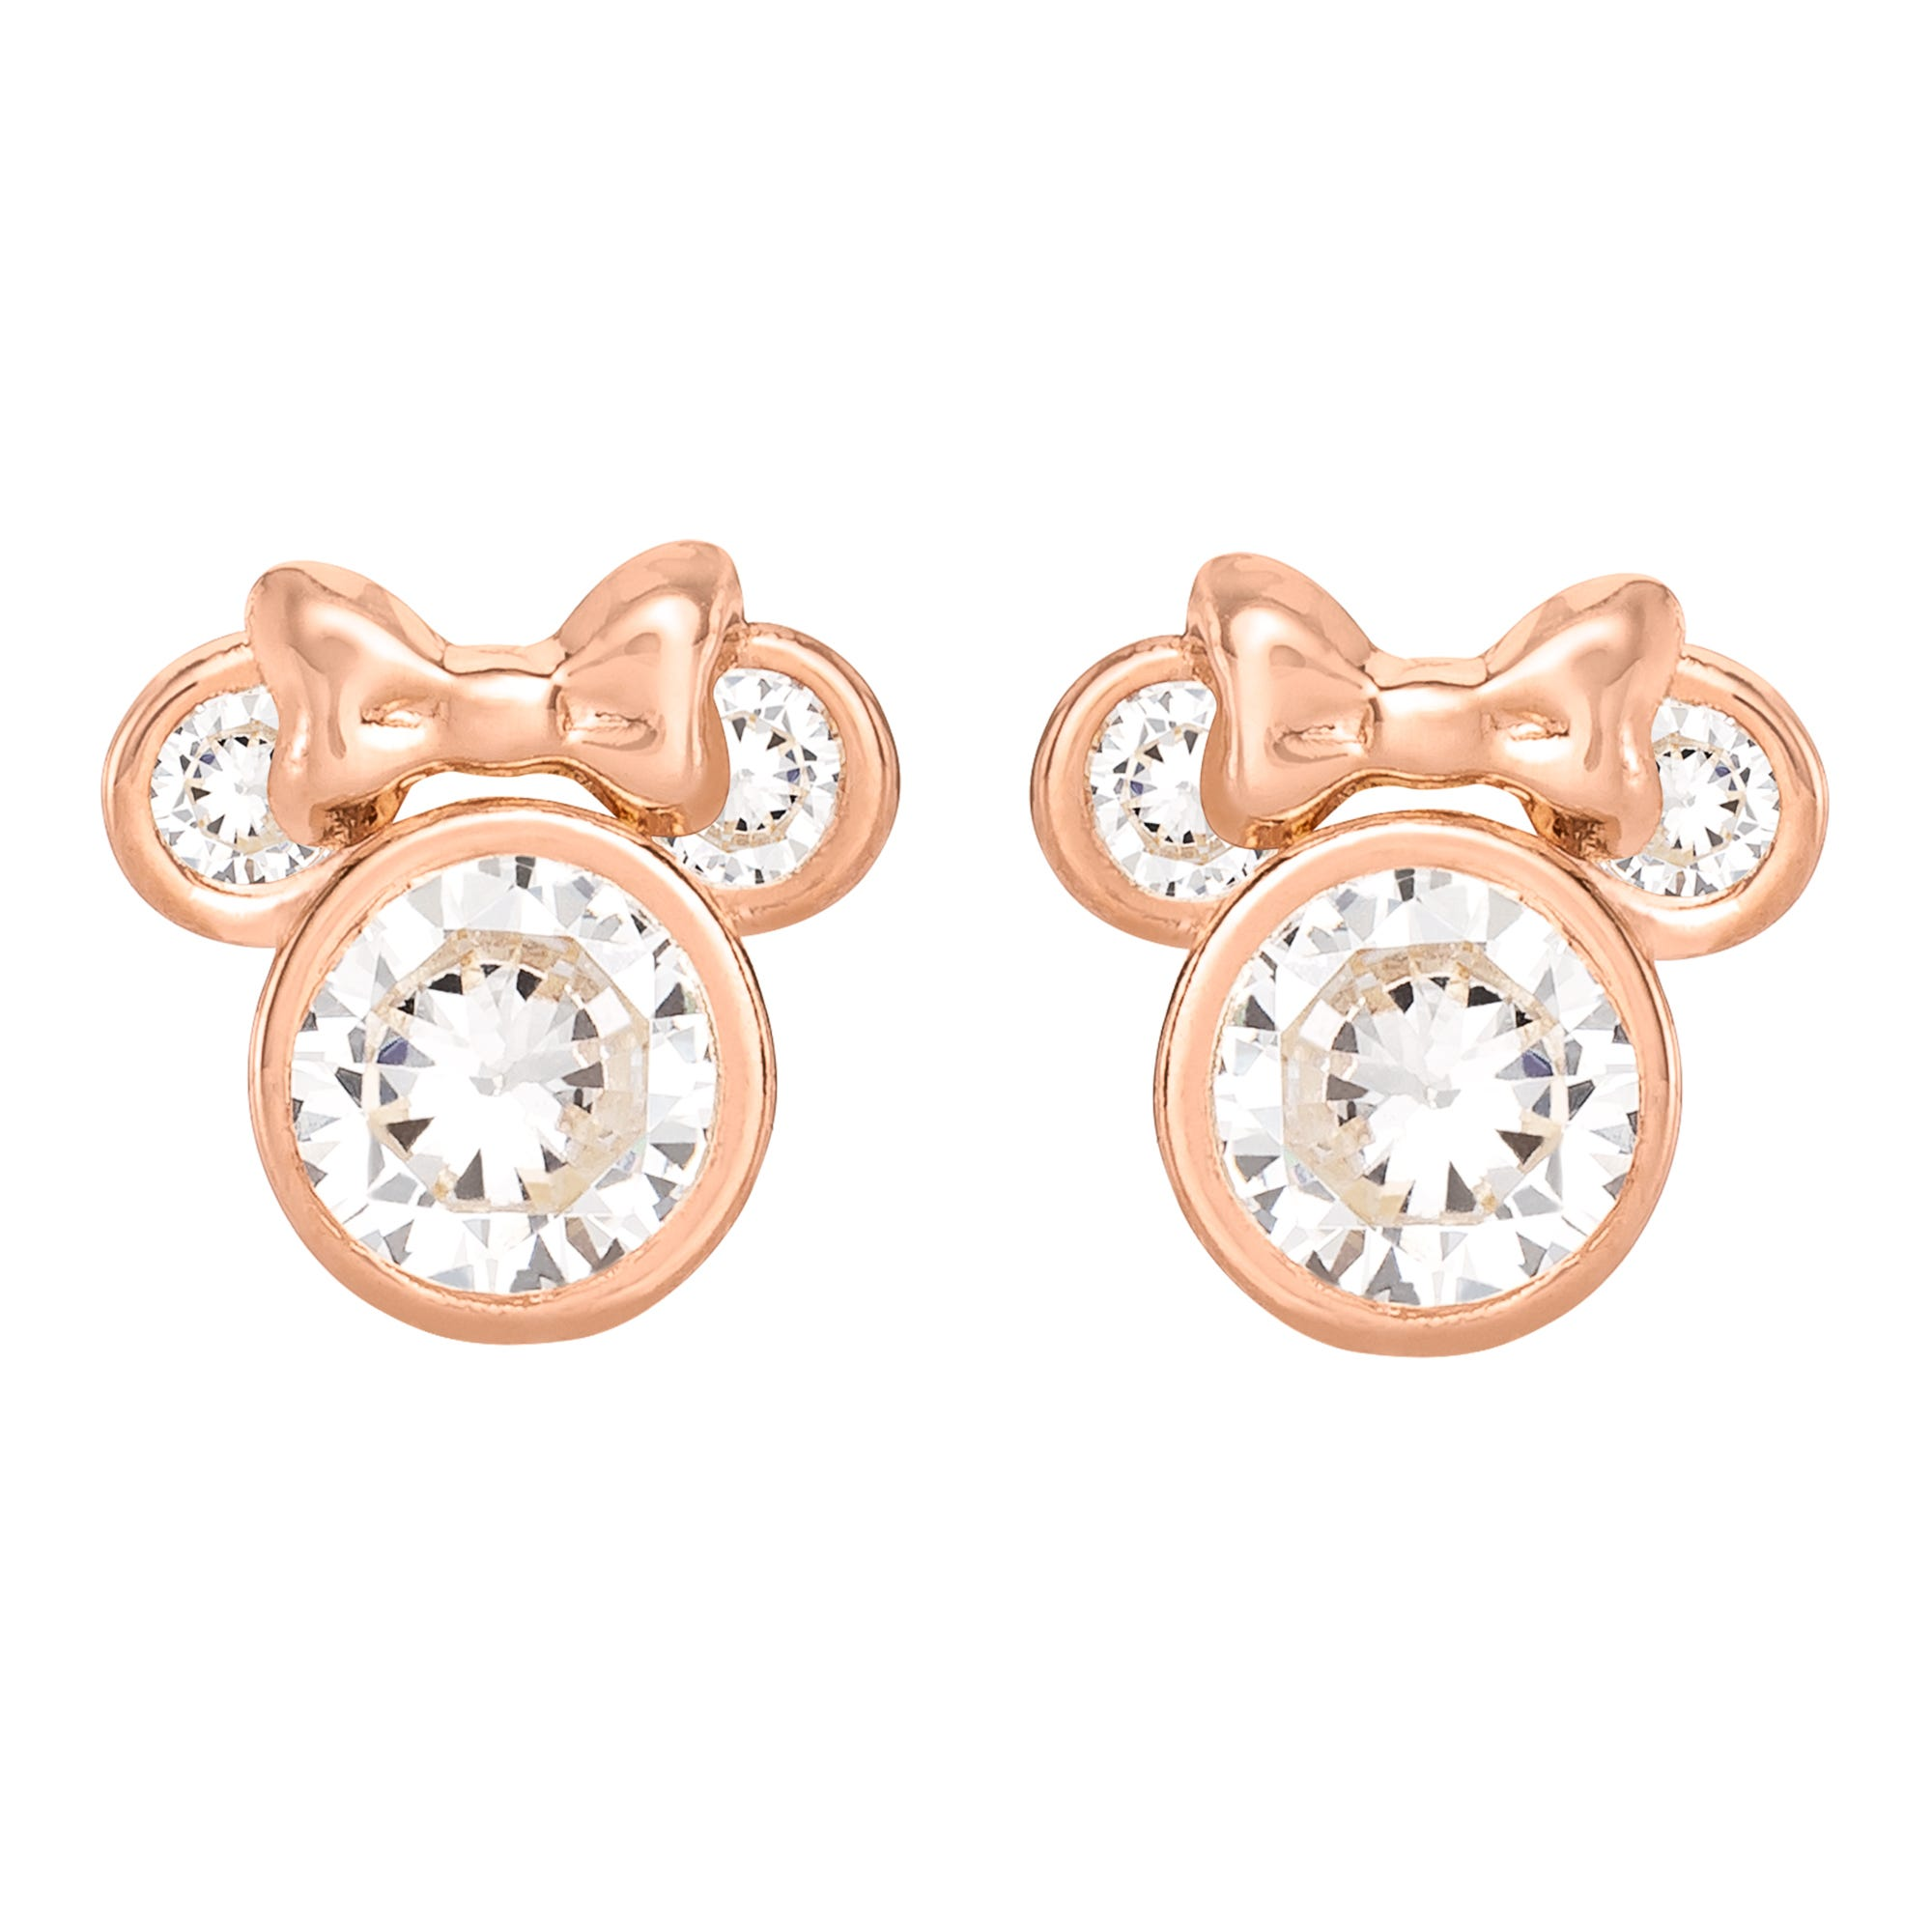 DISNEY© Minnie Mouse CZ Stud Earrings in 10k Rose Gold